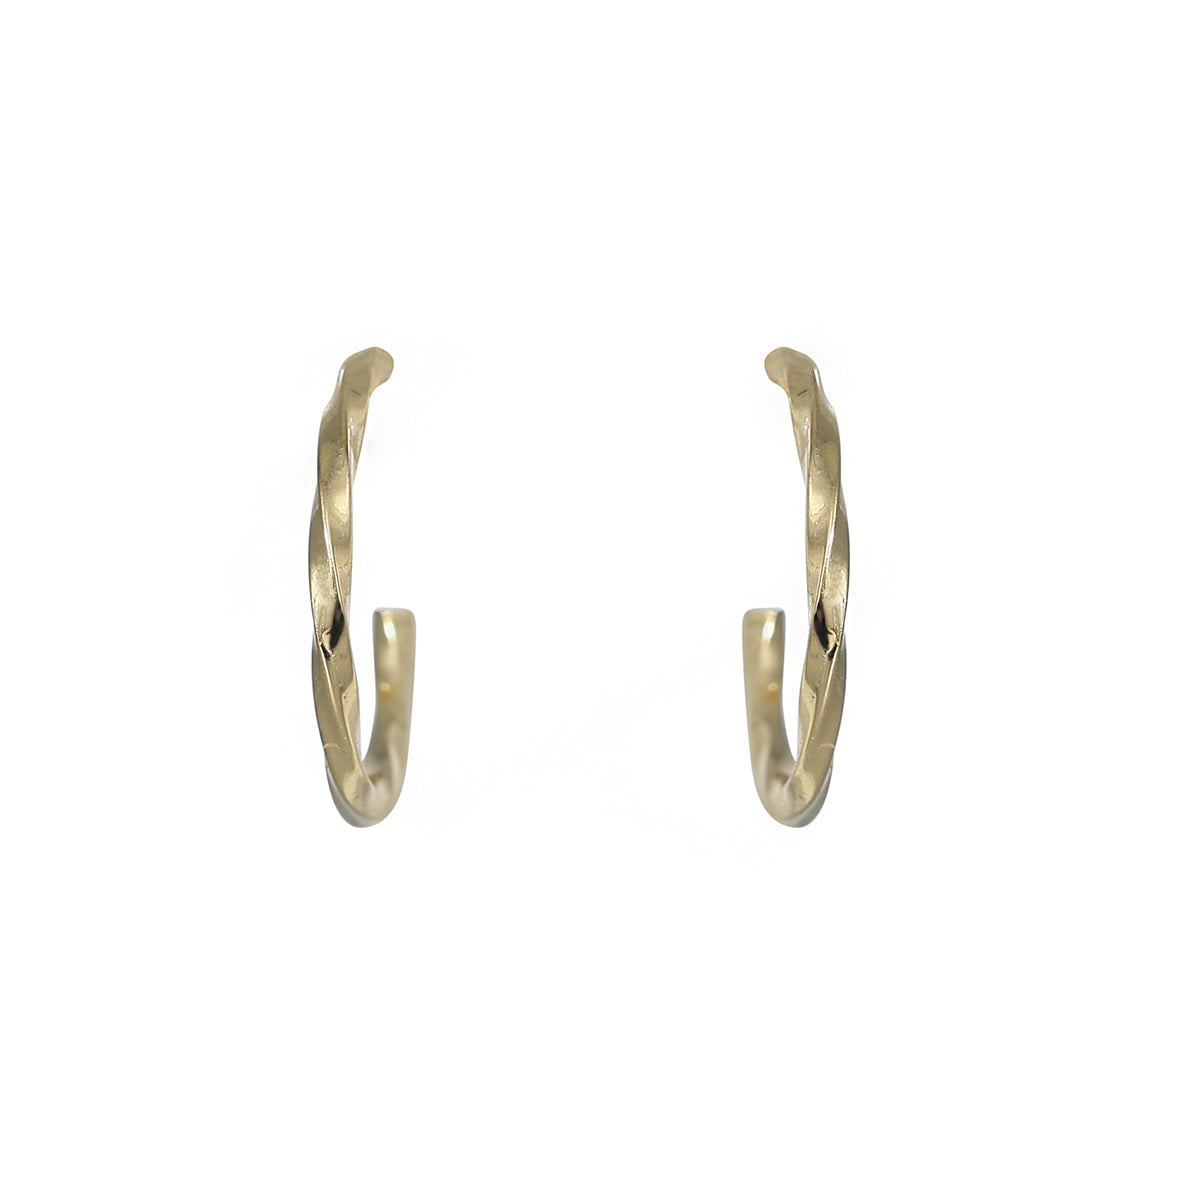 12mm gold plated twisted hoop earring